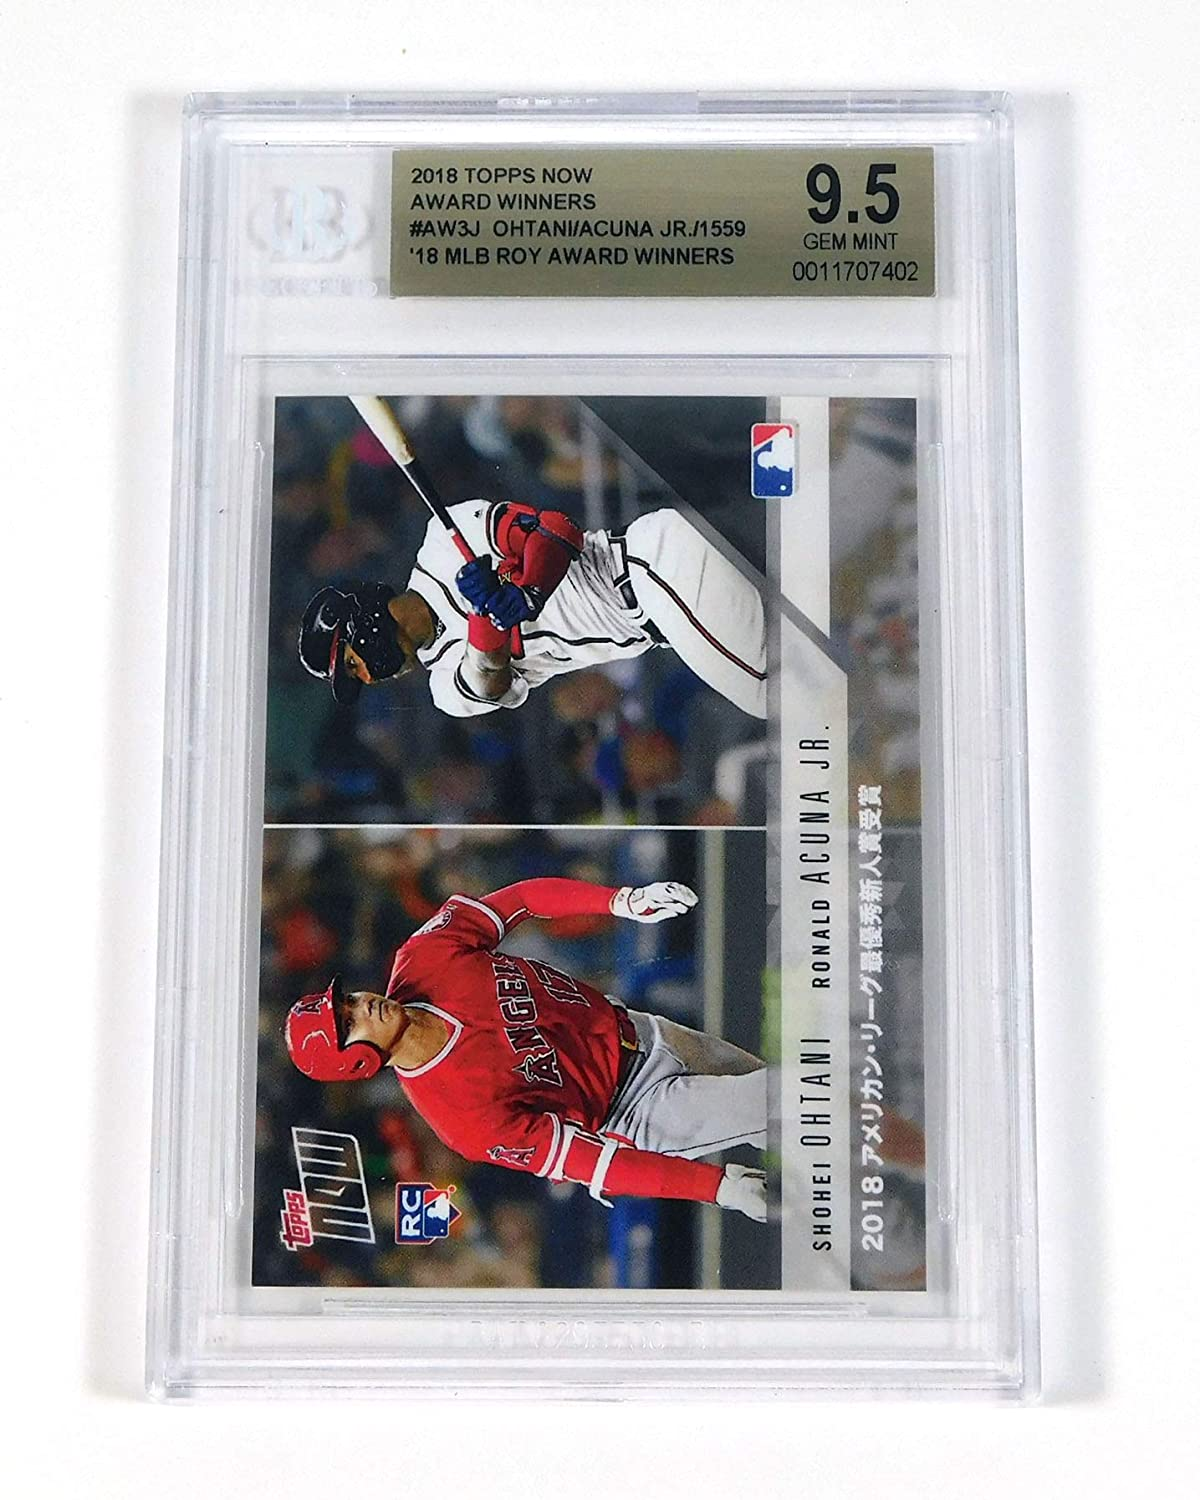 2018 Topps Now Ohtani Acuna Rookie of the Year Dual Award Winners BGS 9.5 Baseball Graded Card